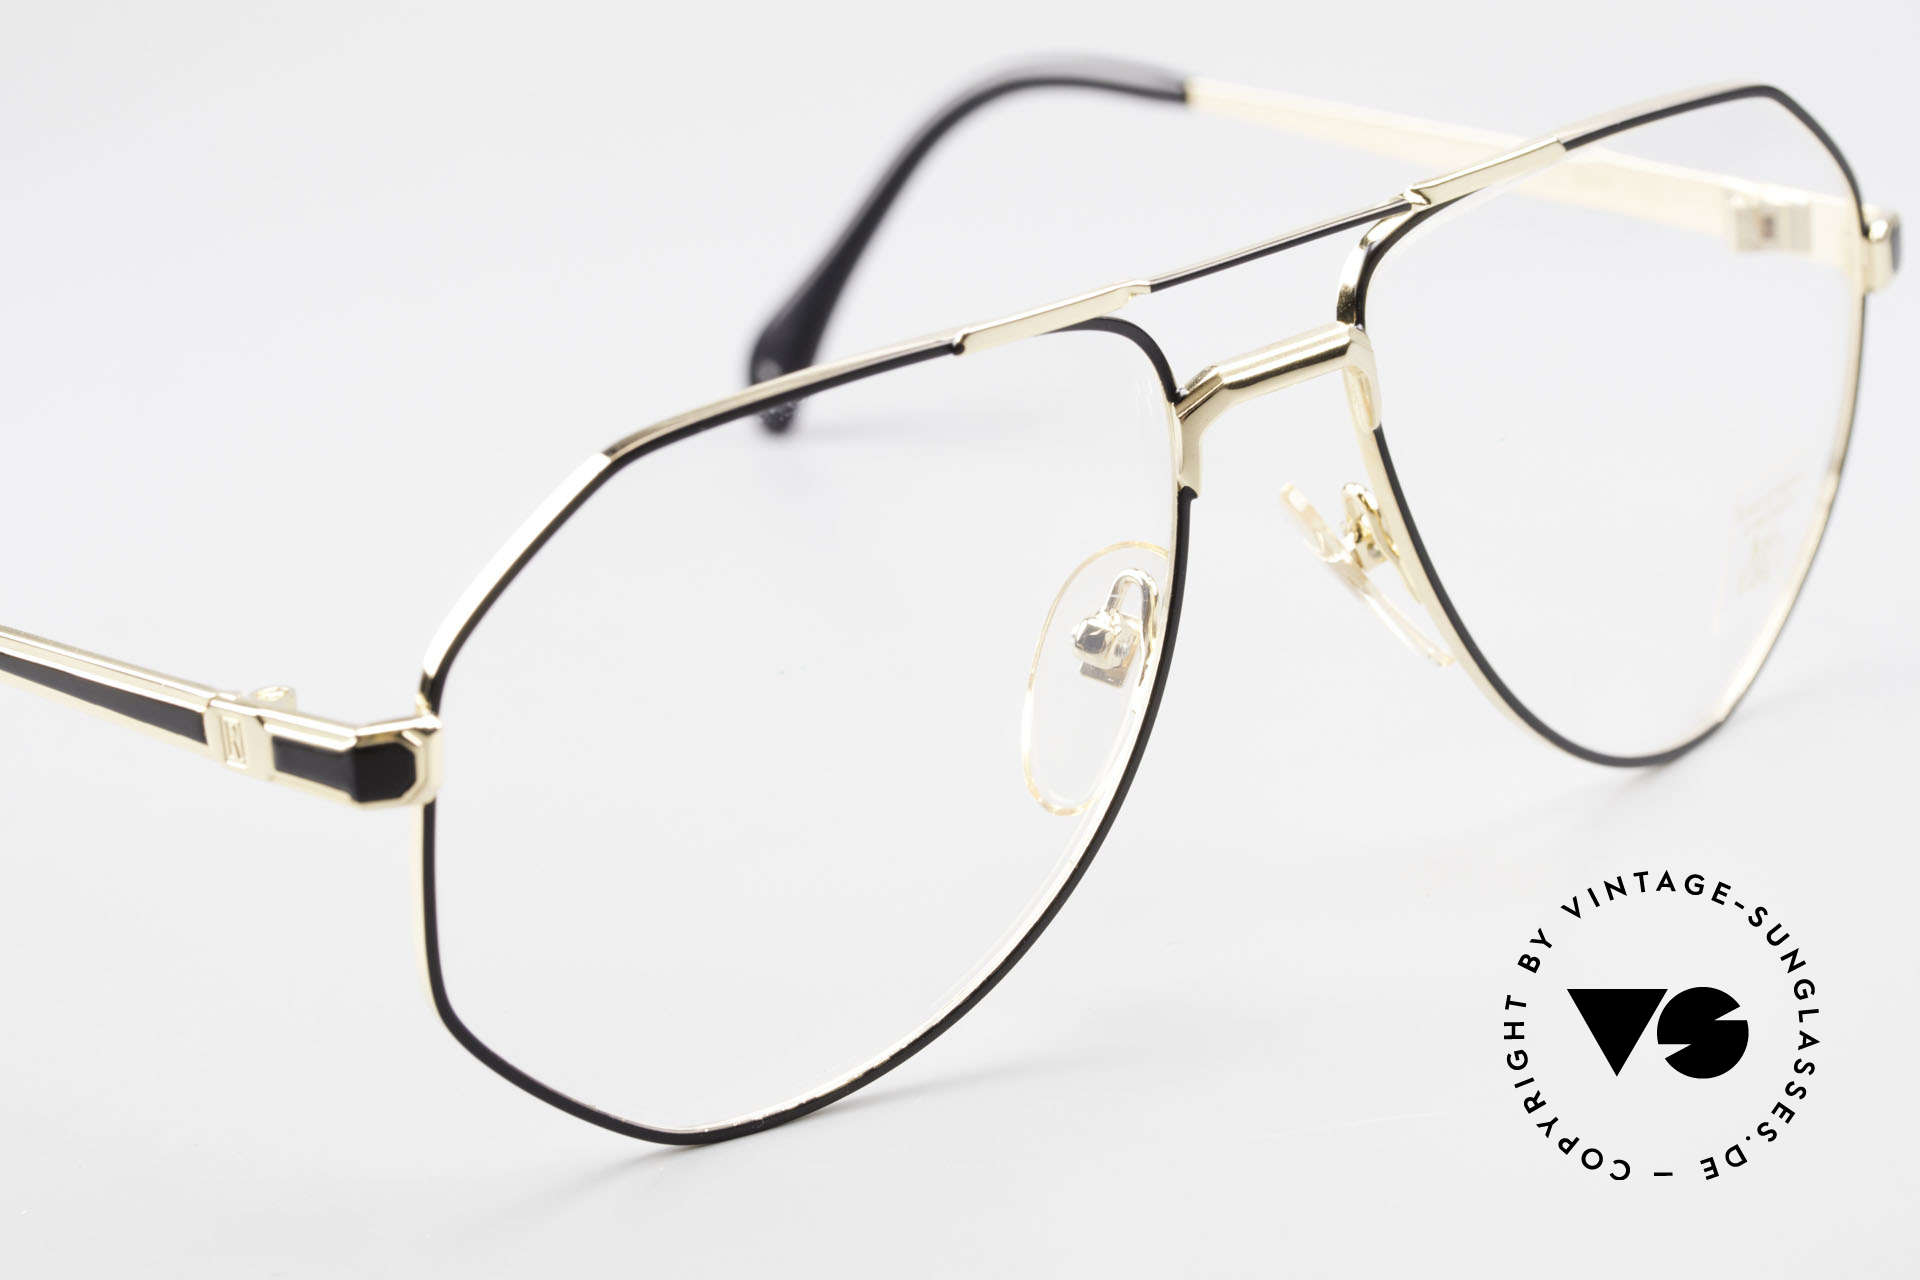 Roman Rothschild R16 Gold Plated Luxury Glasses, DEMO lenses can be replaced with optical (sun) lenses, Made for Men